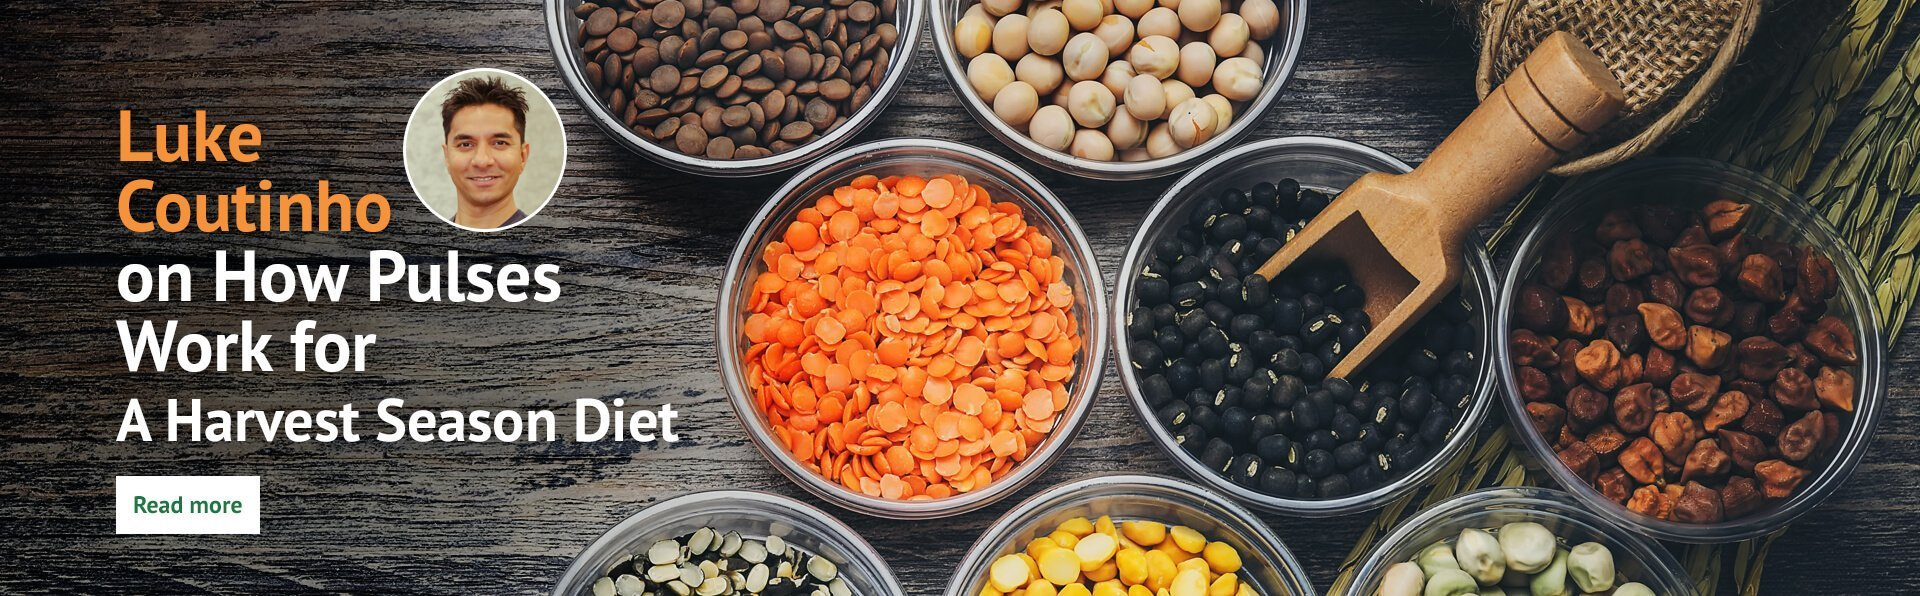 How Pulses work for a harvest season diet